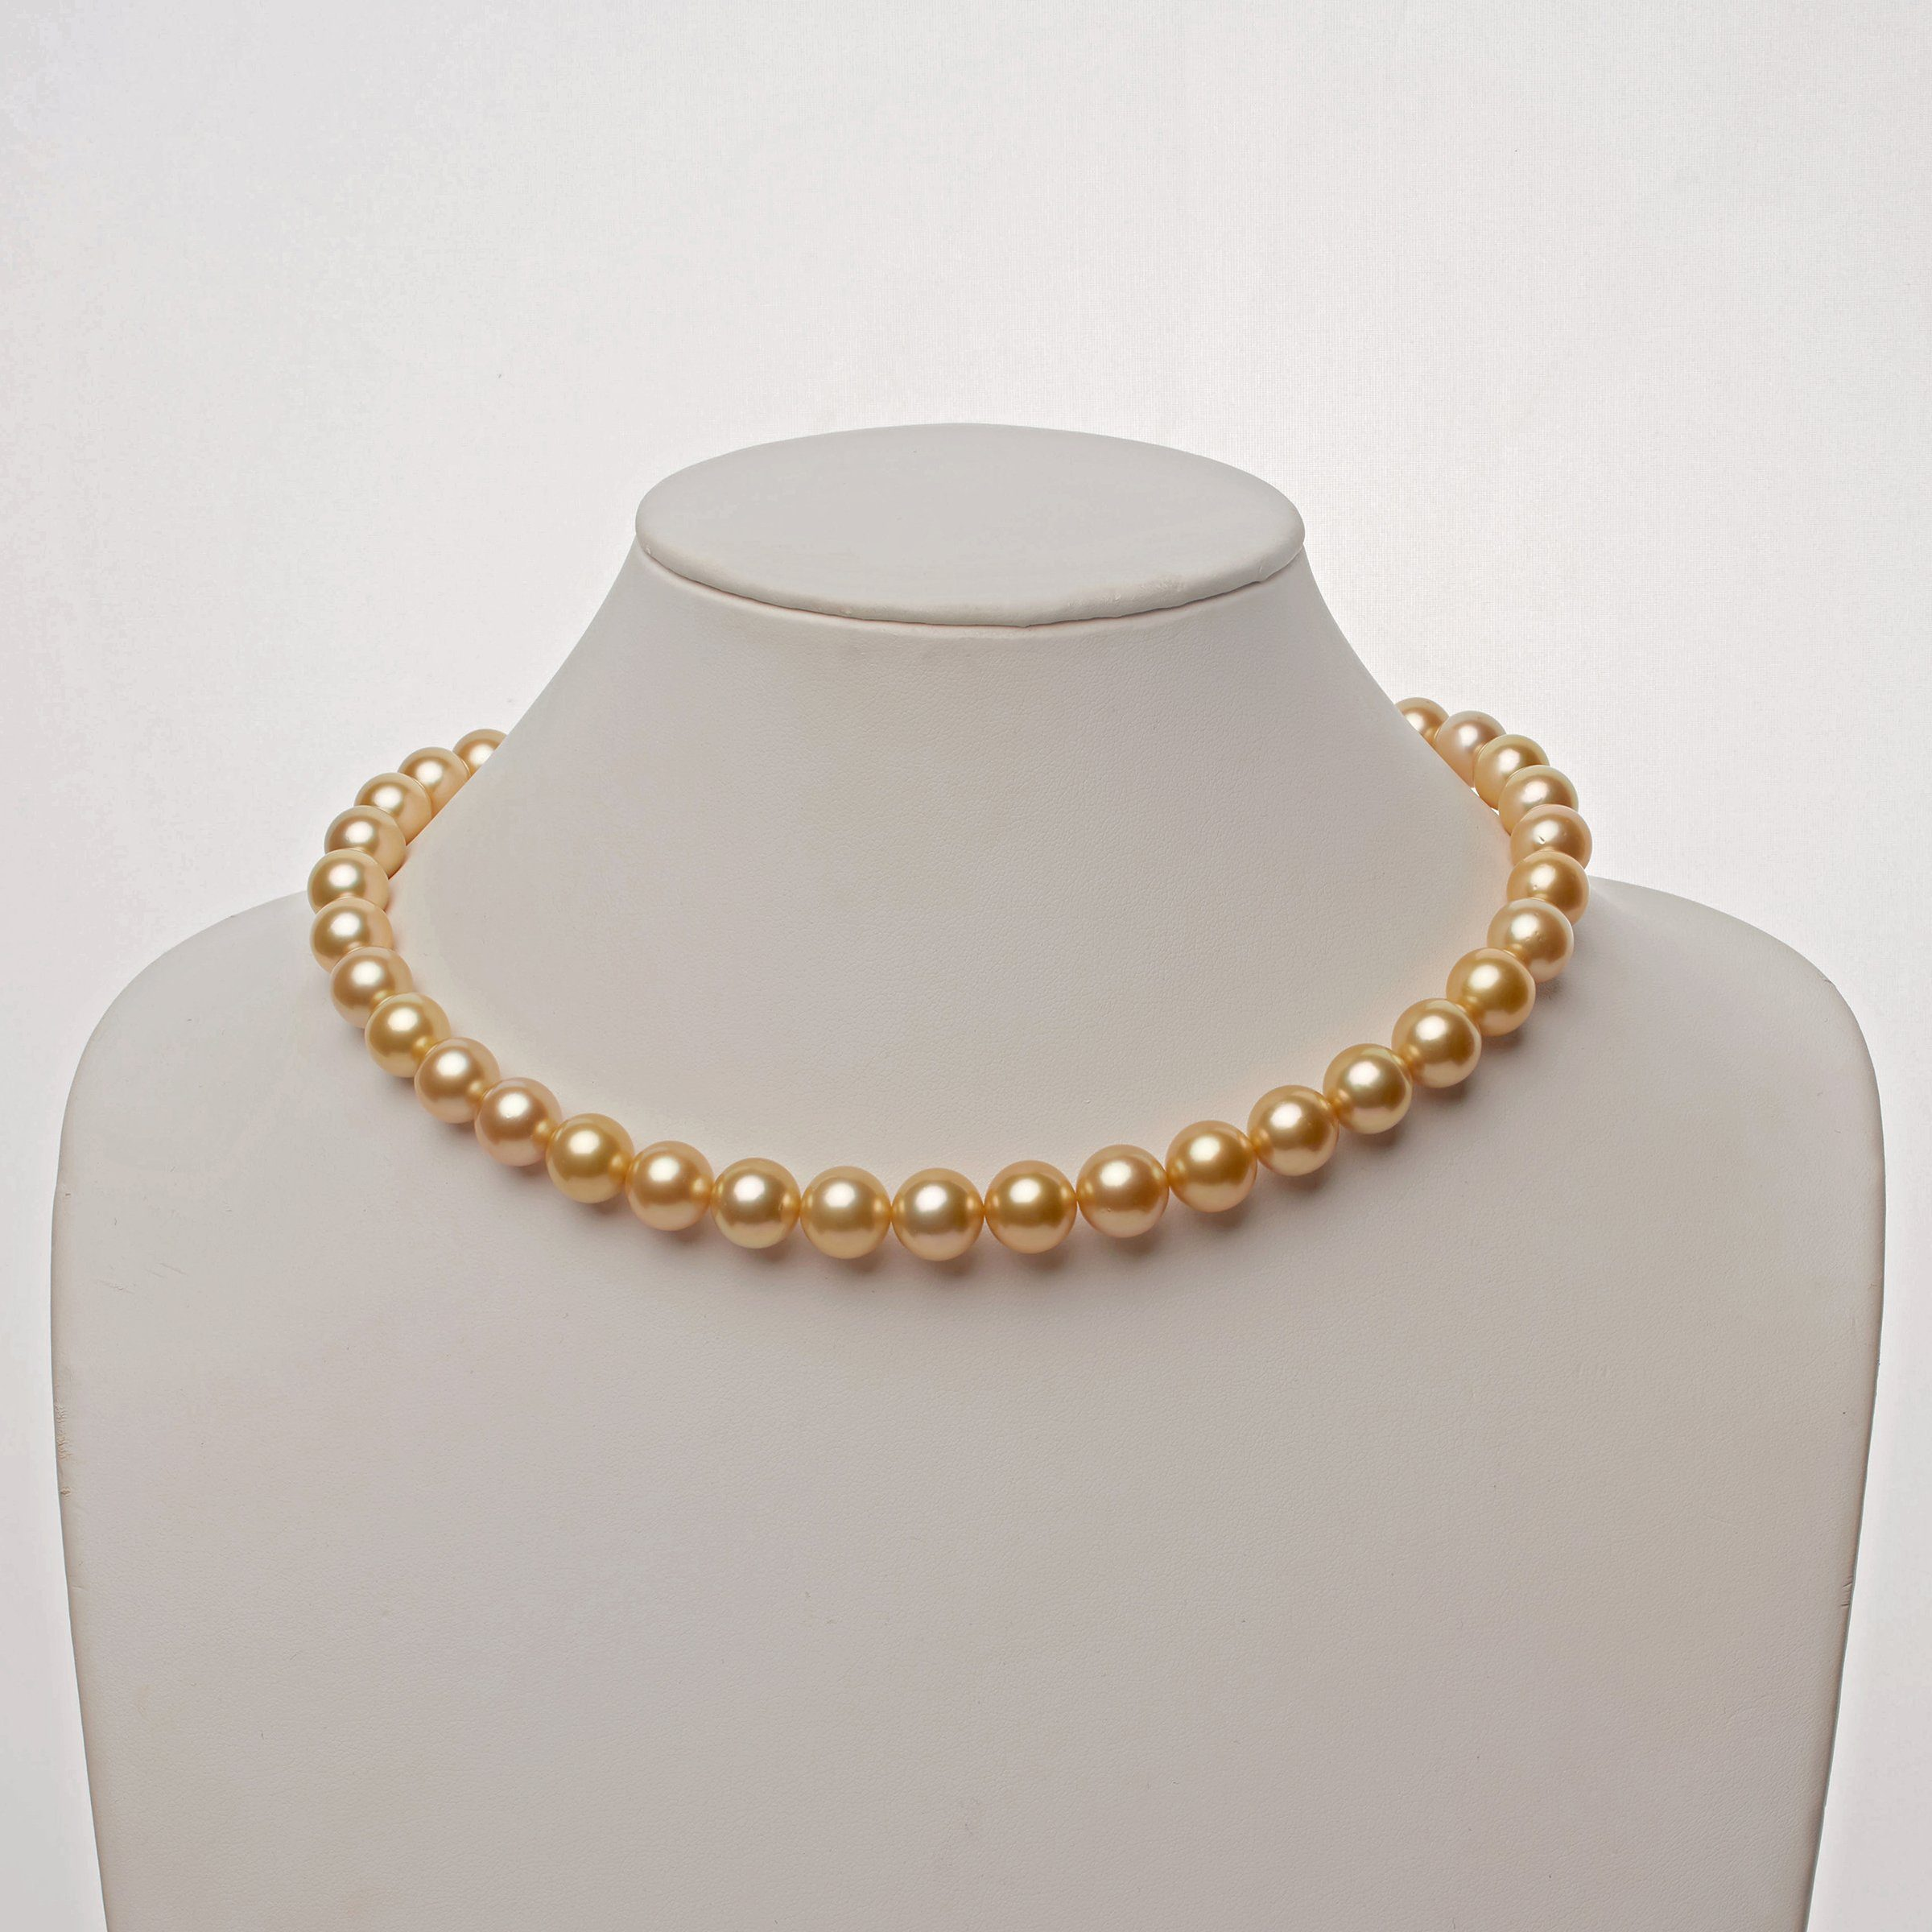 10.0-11.9 mm AA+/AAA Golden South Sea Round Pearl Necklace